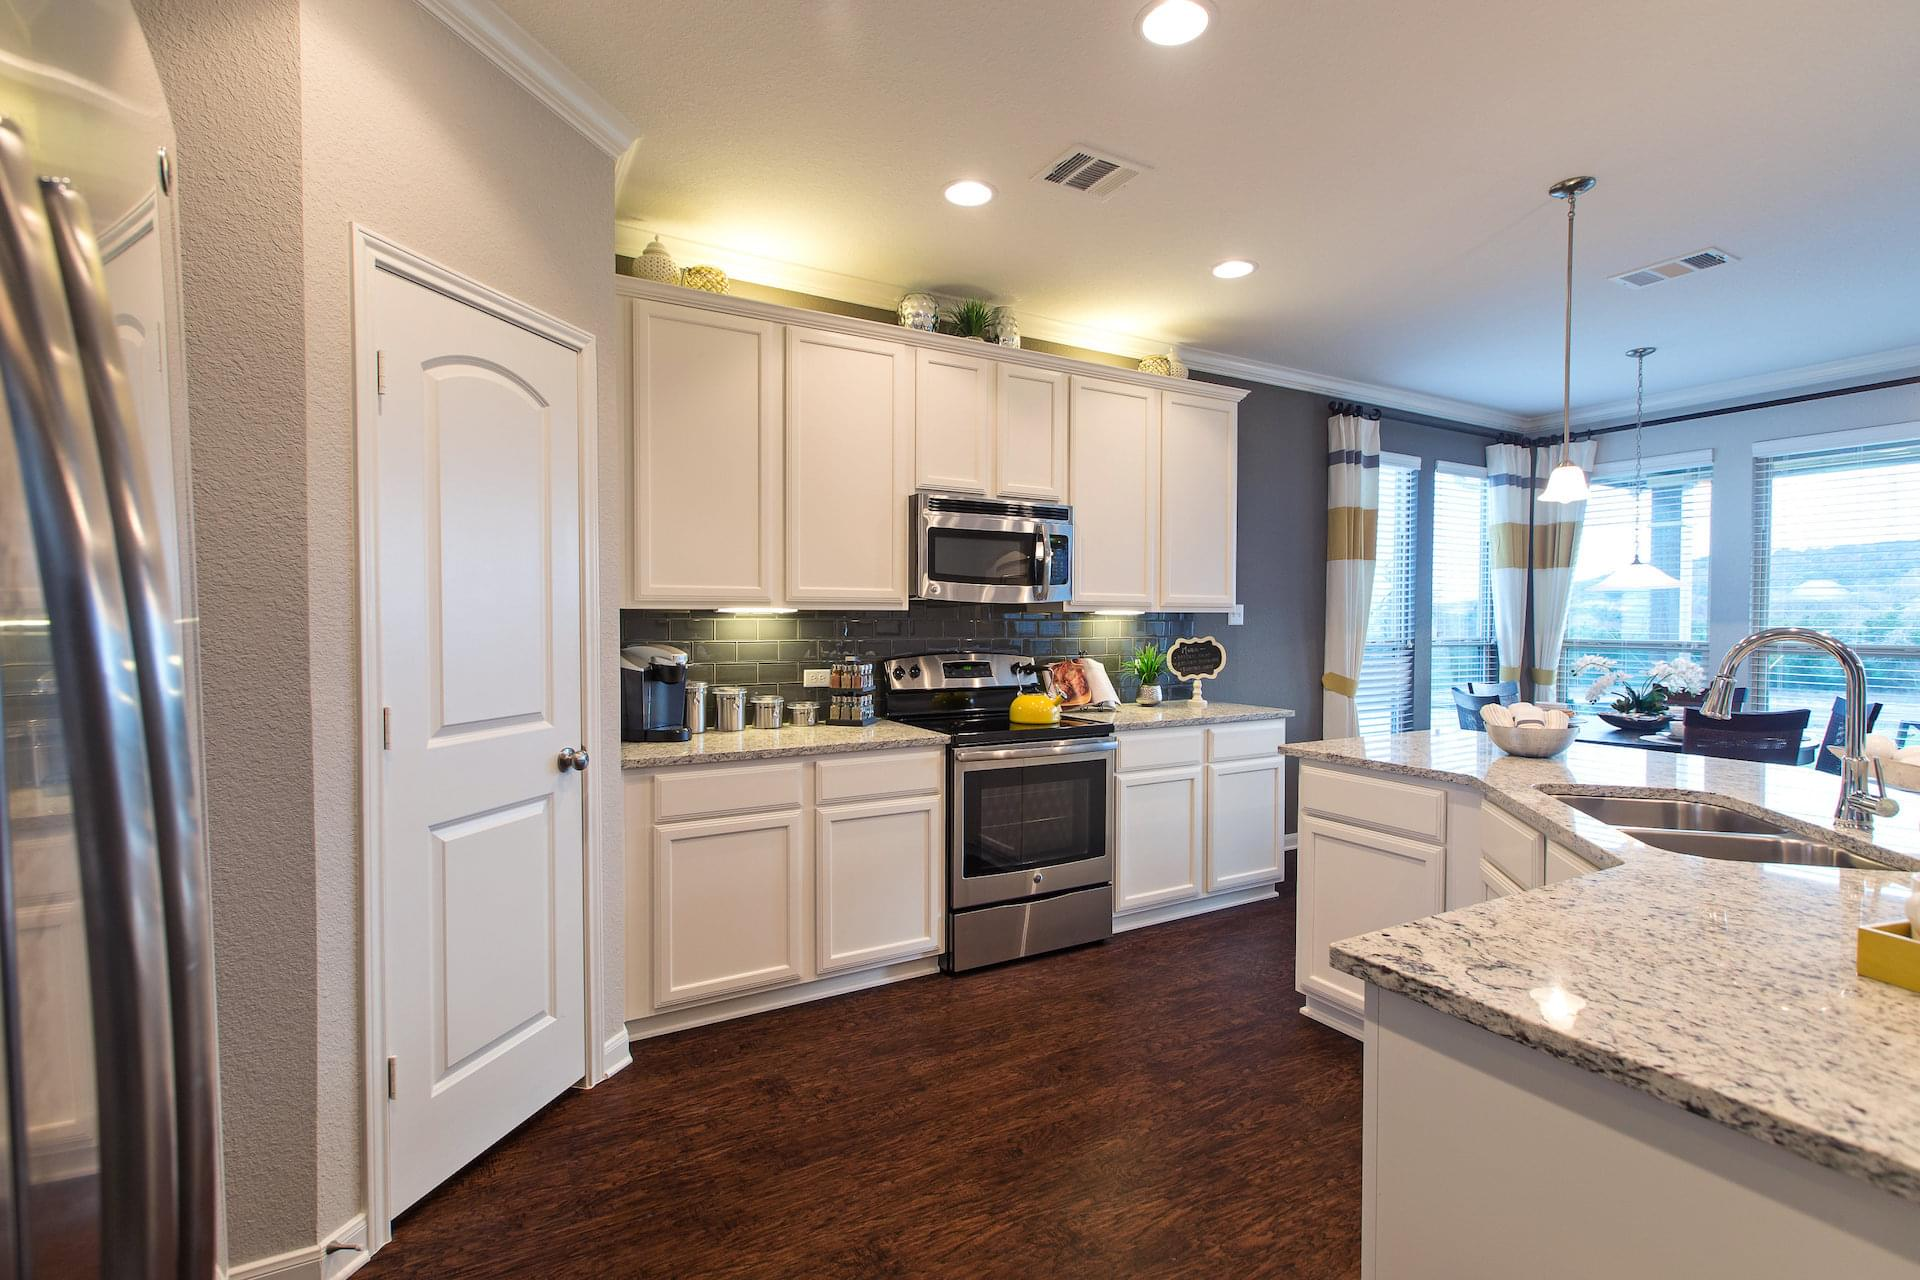 4br New Home in Copperas Cove, TX